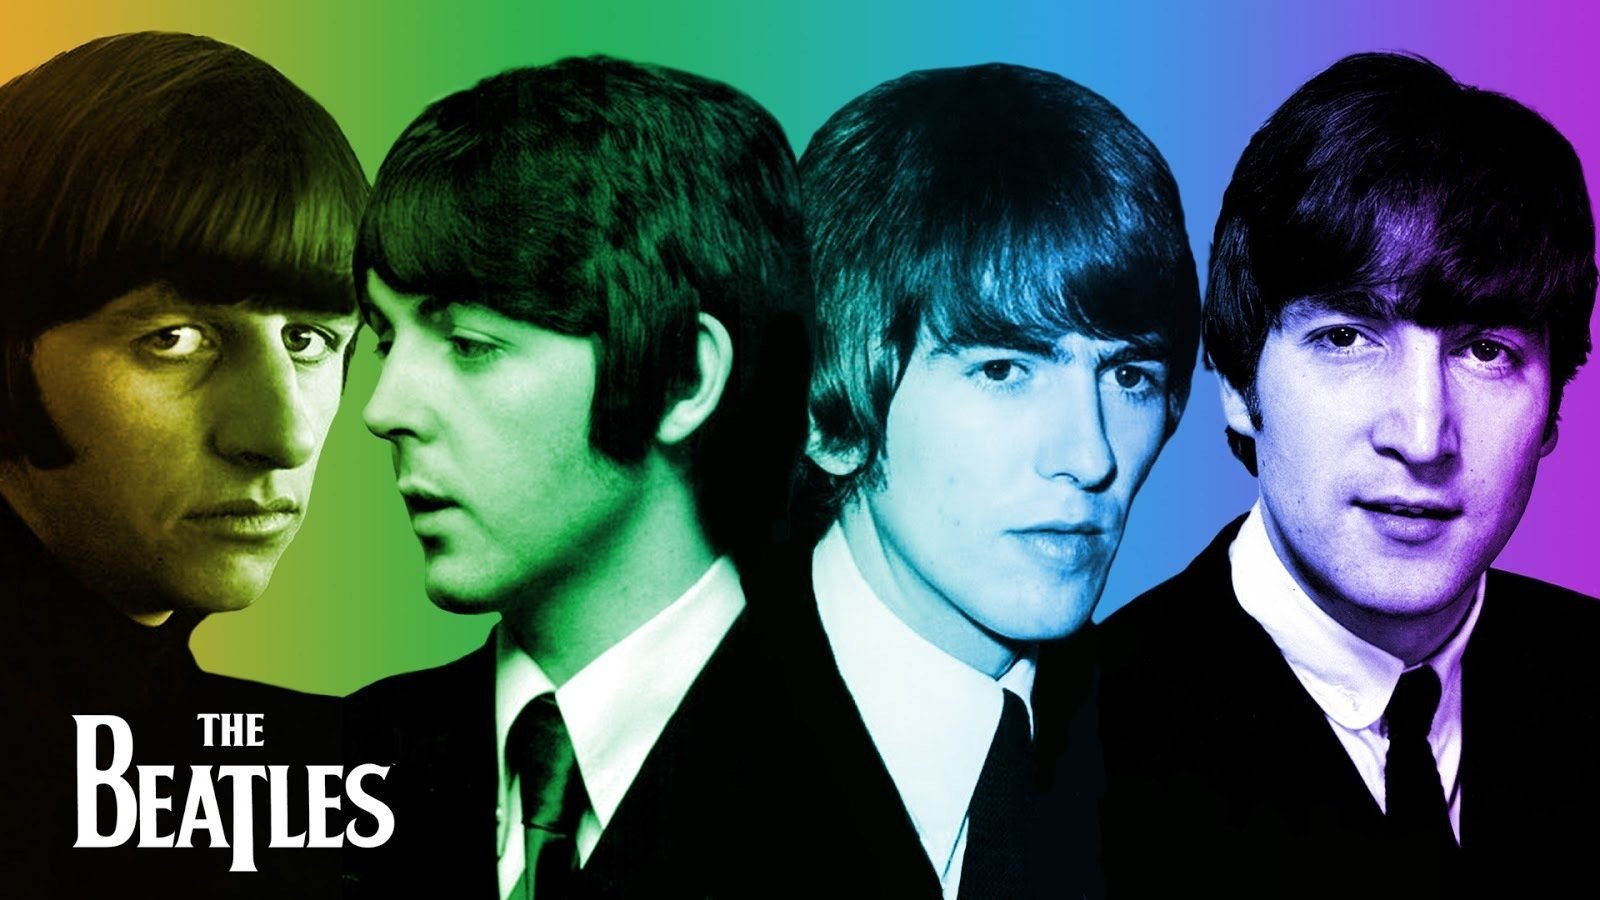 The Beatles Iphone 5 Wallpaper The Beatles Wallpaper And Background Image 1600x900 Id